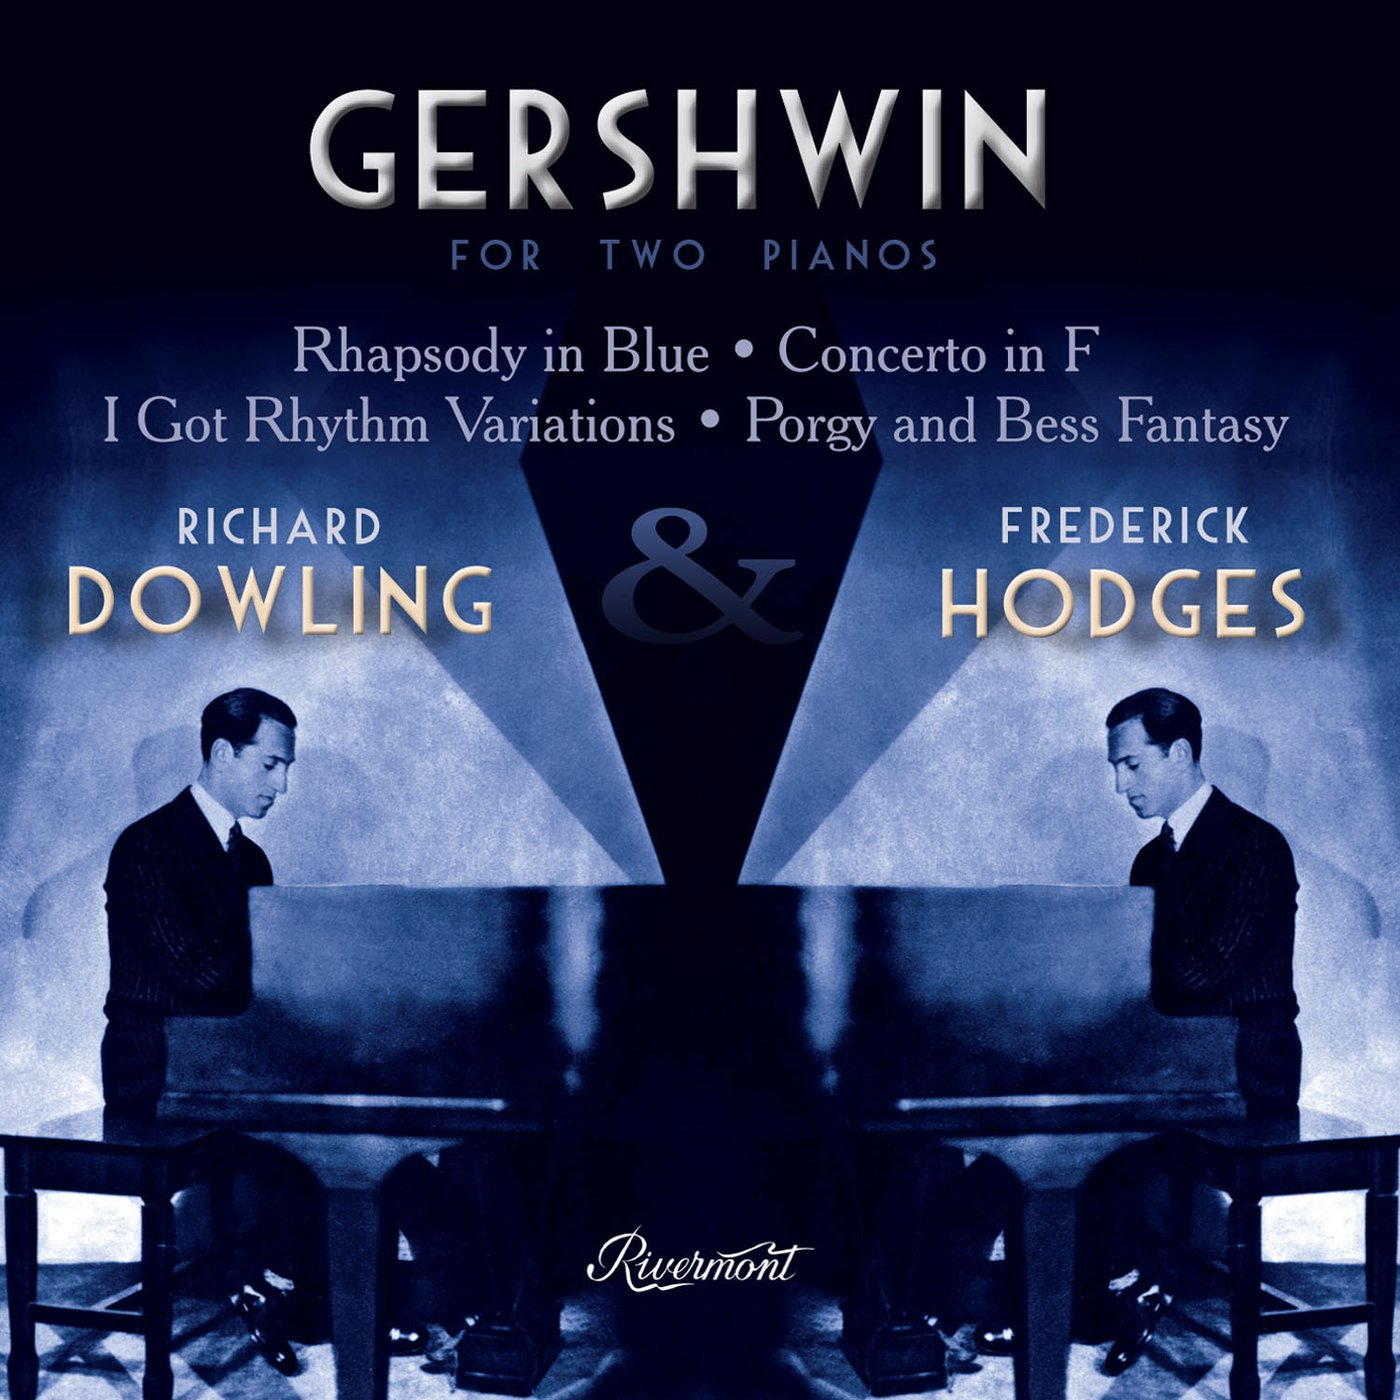 FREDERICK HODGES - Frederick Hodges and Richard Dowling : Gershwin For Two Pianos cover